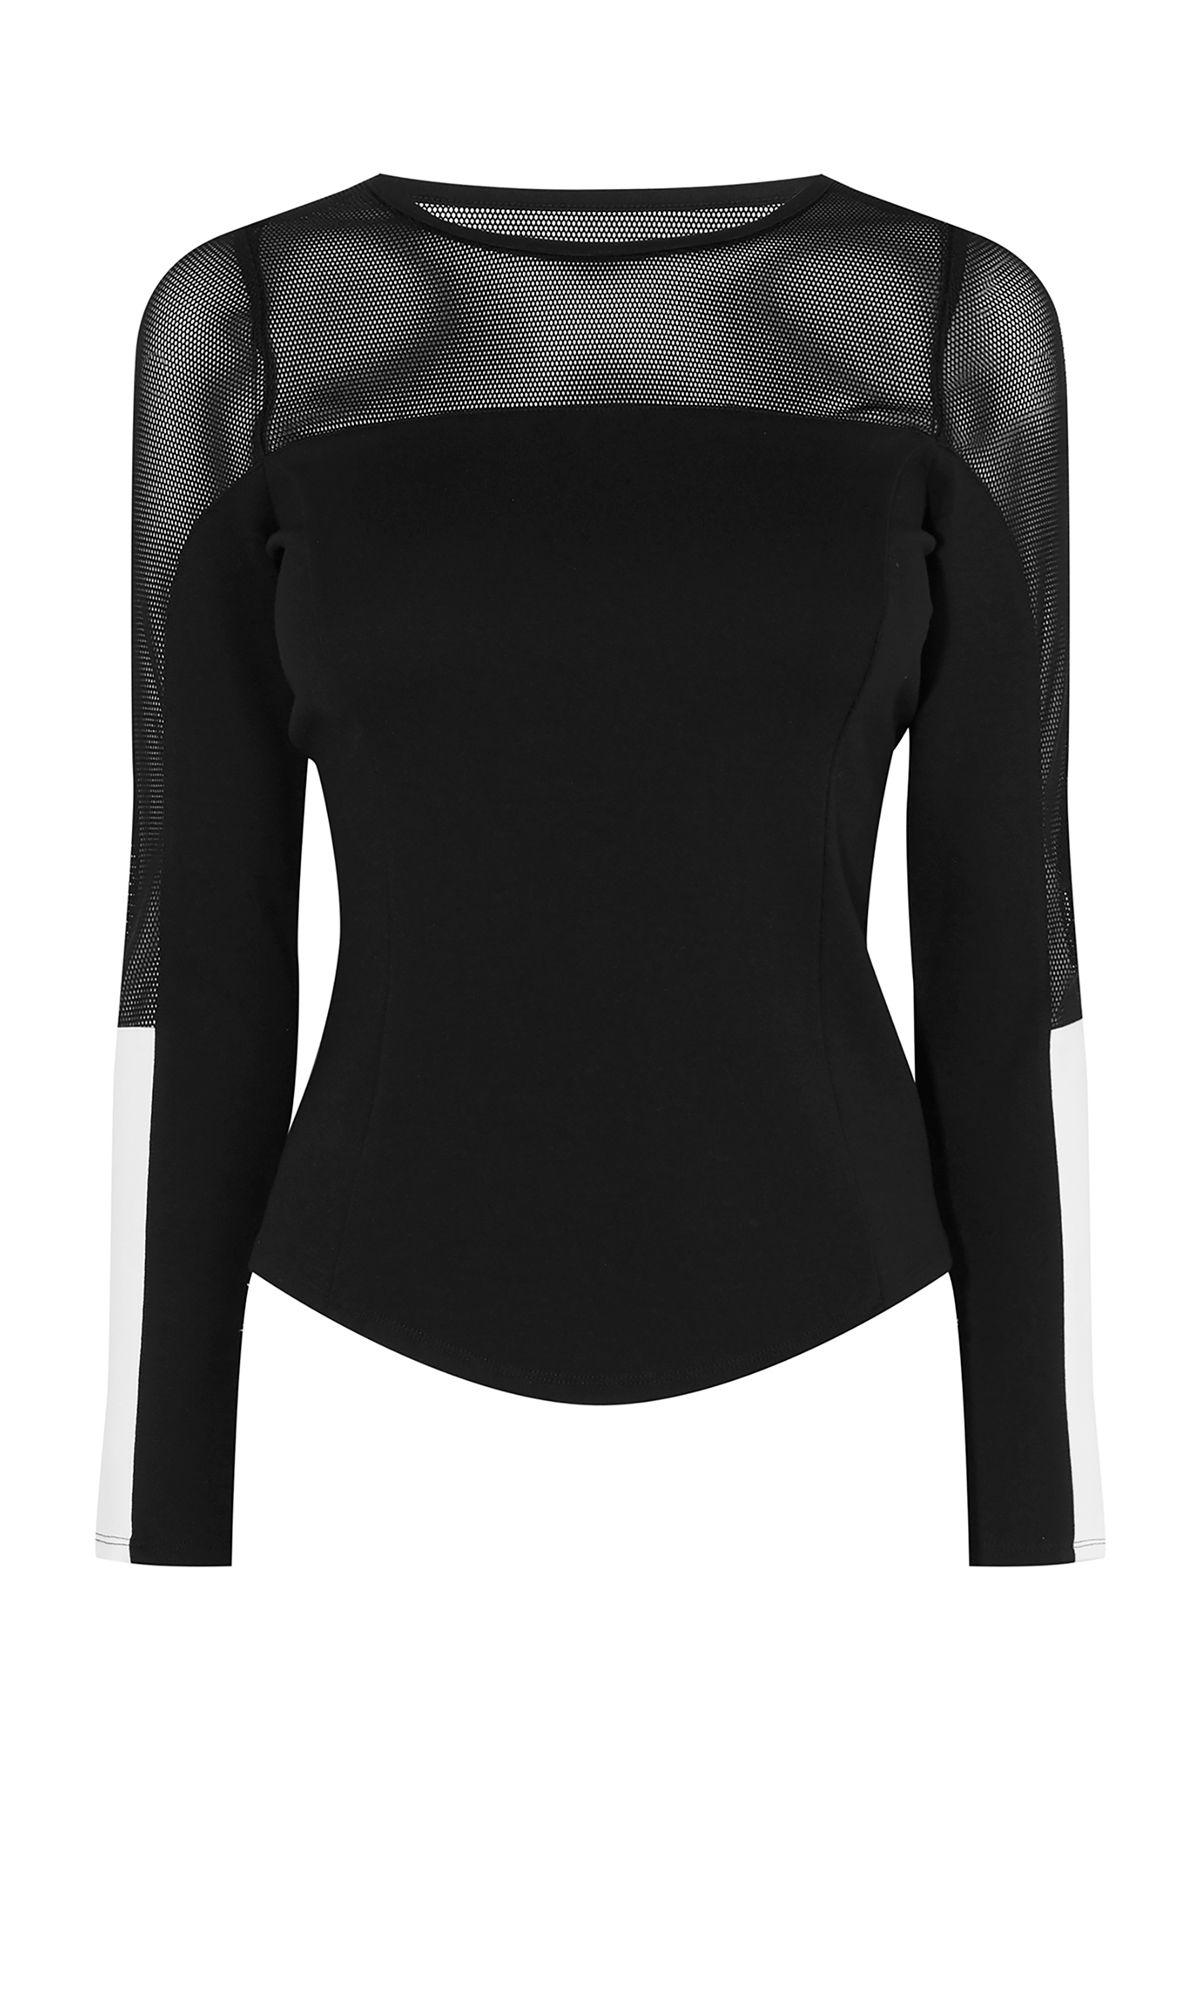 Karen Millen Mesh Panel Long-Sleeve Top, Multi-Coloured